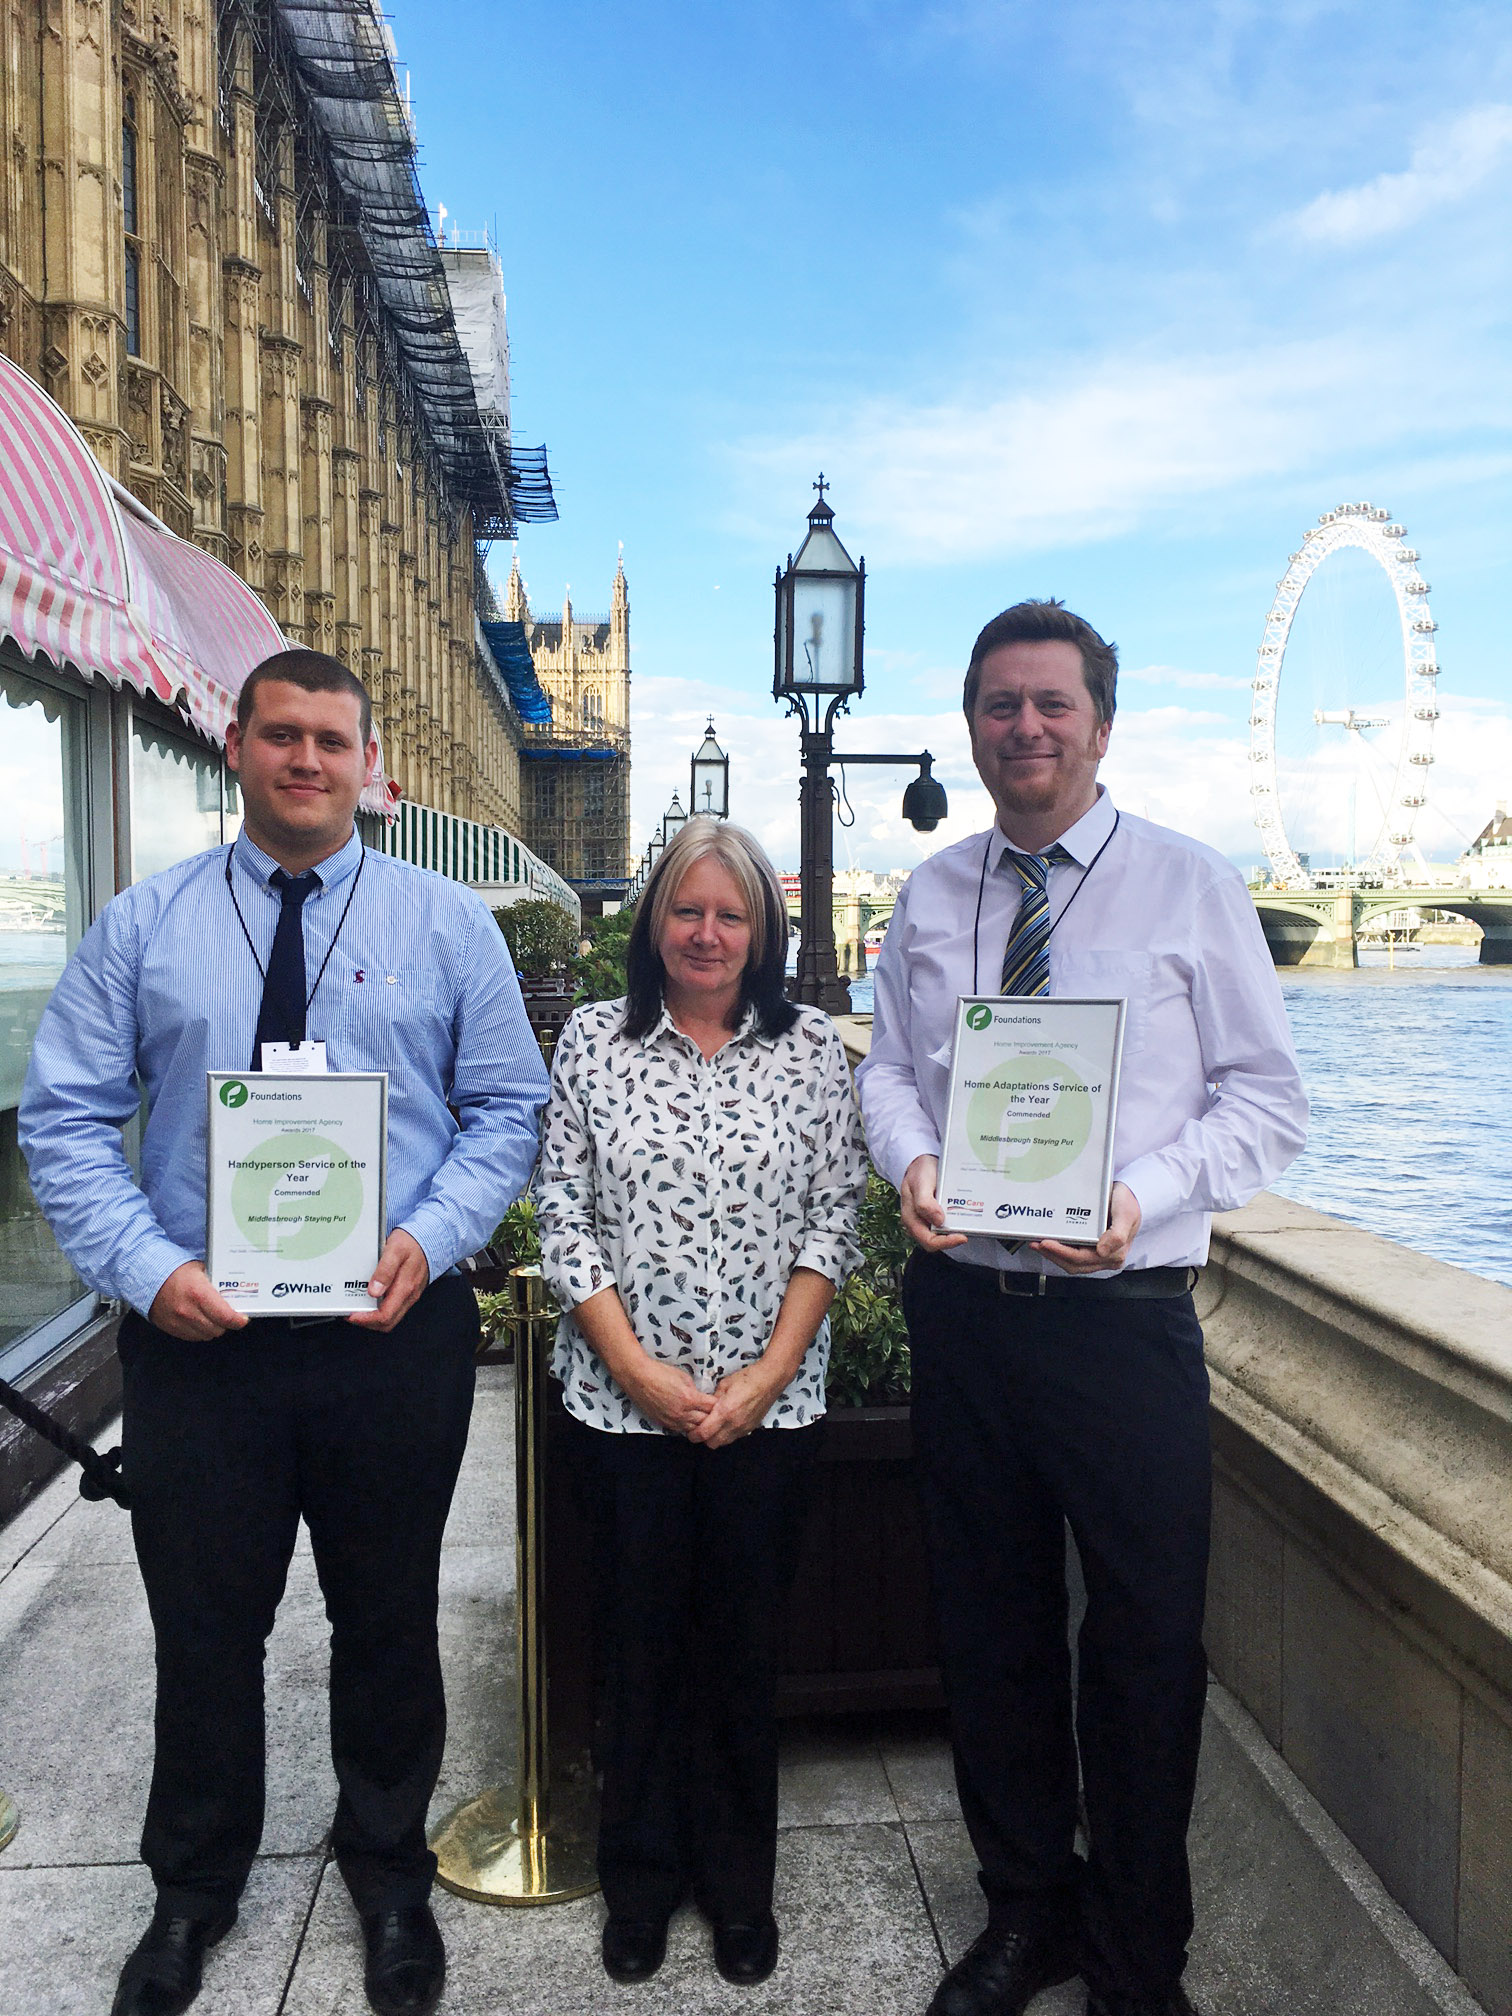 Middlesbrough Mobile Adapt and Mend Service (MMAMS) Handyperson Team Leader Andrew Horne, Admin Assistant Susan Jones and Caseworker Martin Robinson receive their awards at the House of Lords